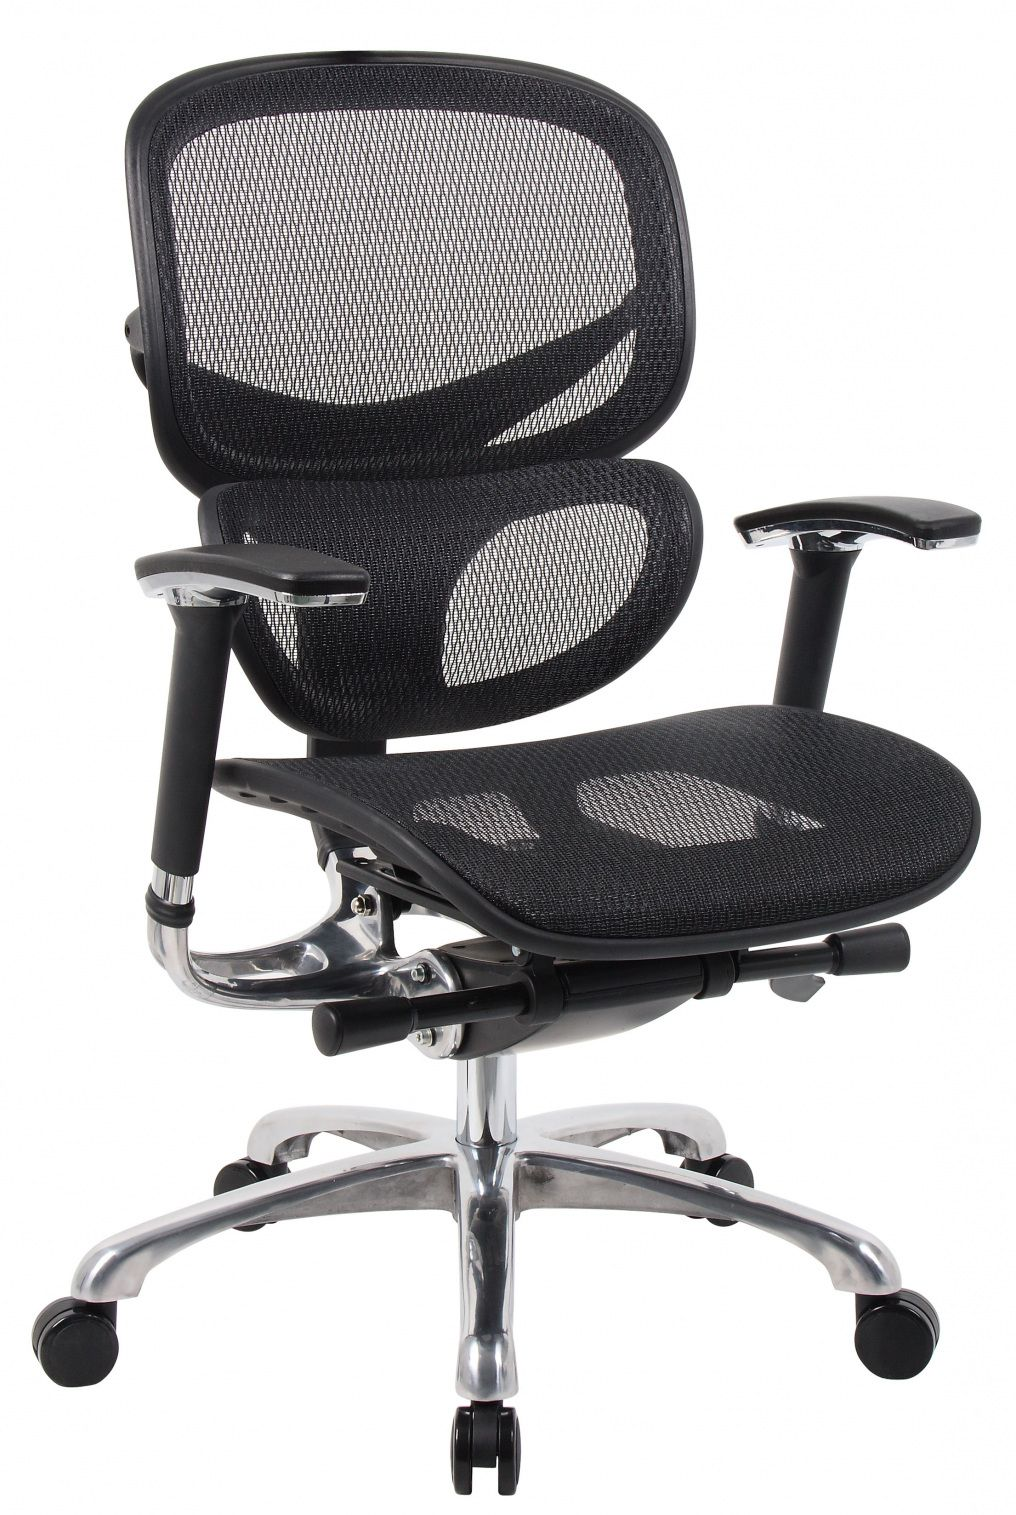 Office Chair With Mesh Seat Used Home Furniture Check More At Http Www Drjamesghoodblog